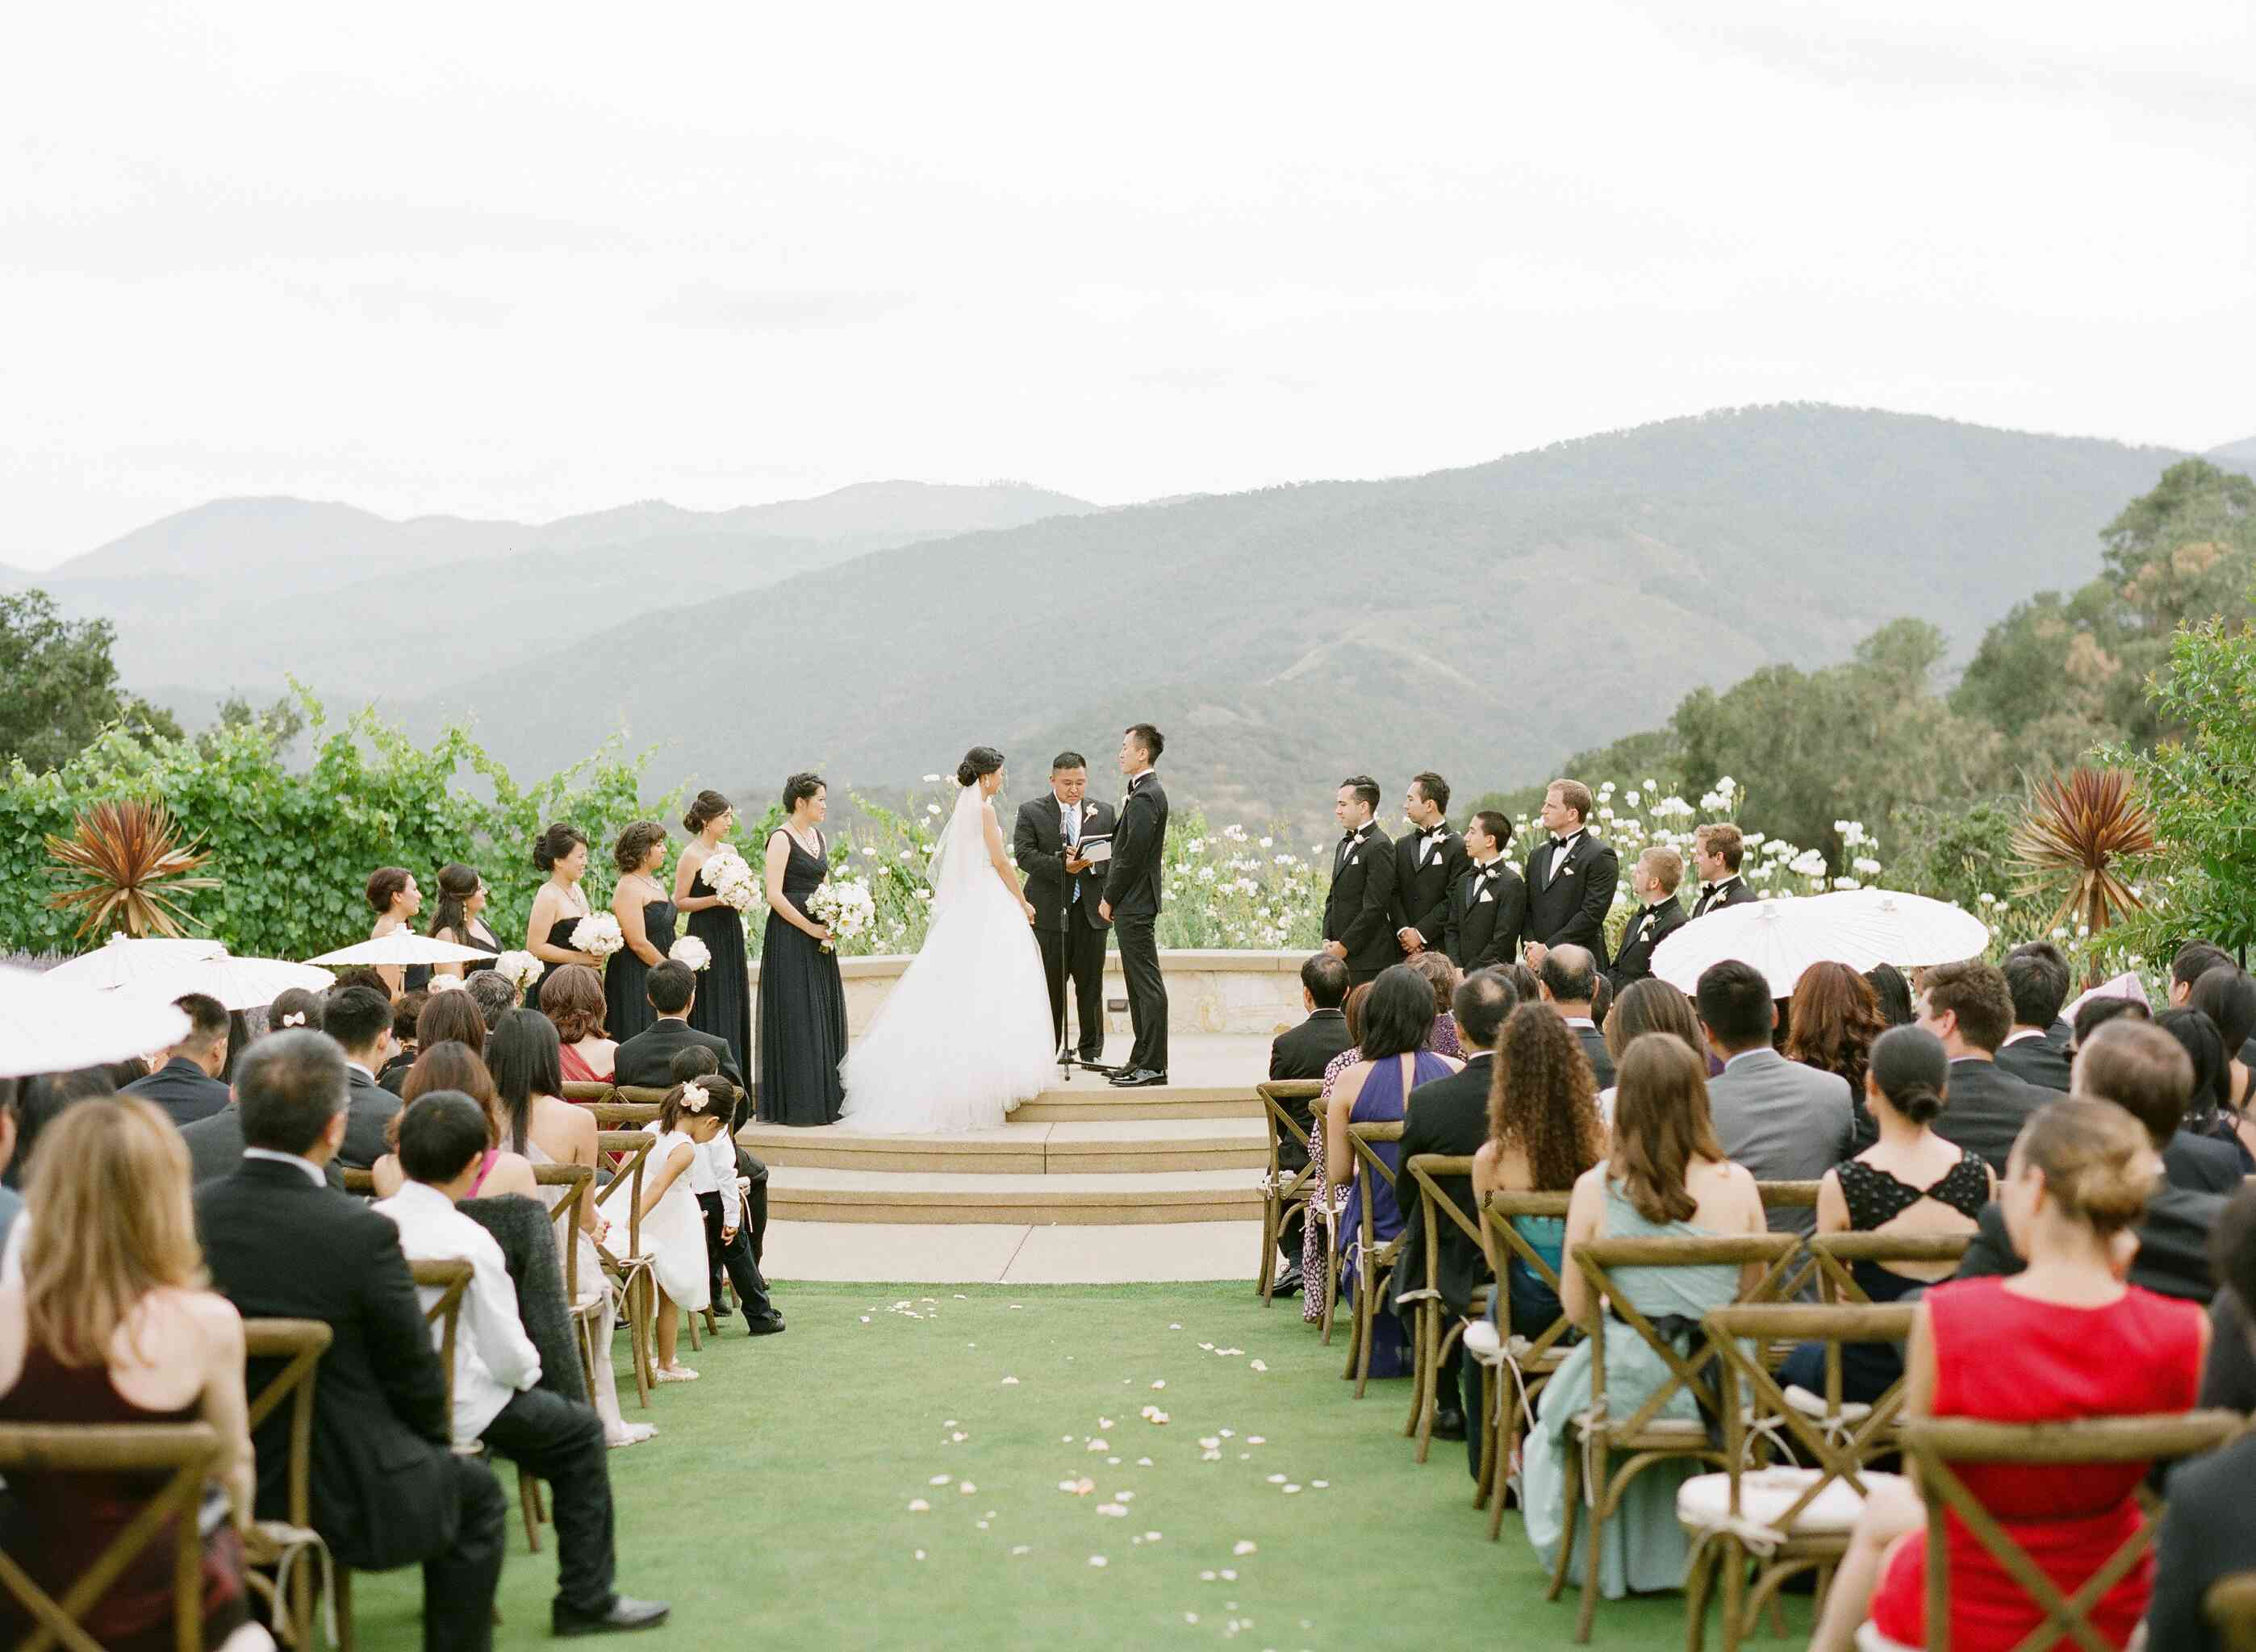 Wedding ceremony surrounded by greenery with mountains in the background